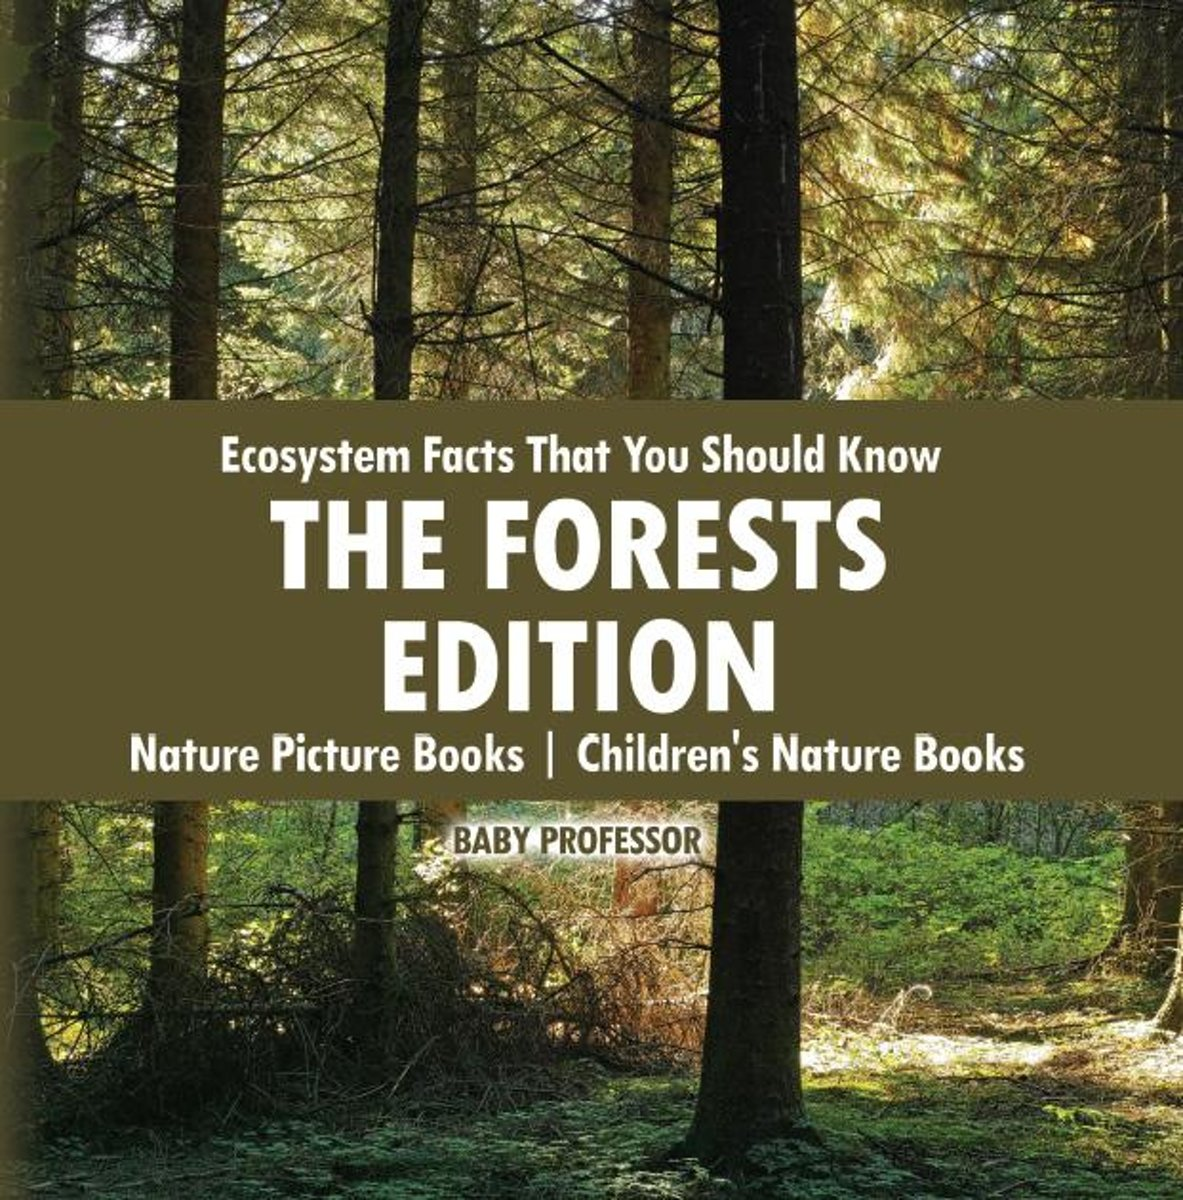 Ecosystem Facts That You Should Know - The Forests Edition - Nature Picture Books | Children's Nature Books